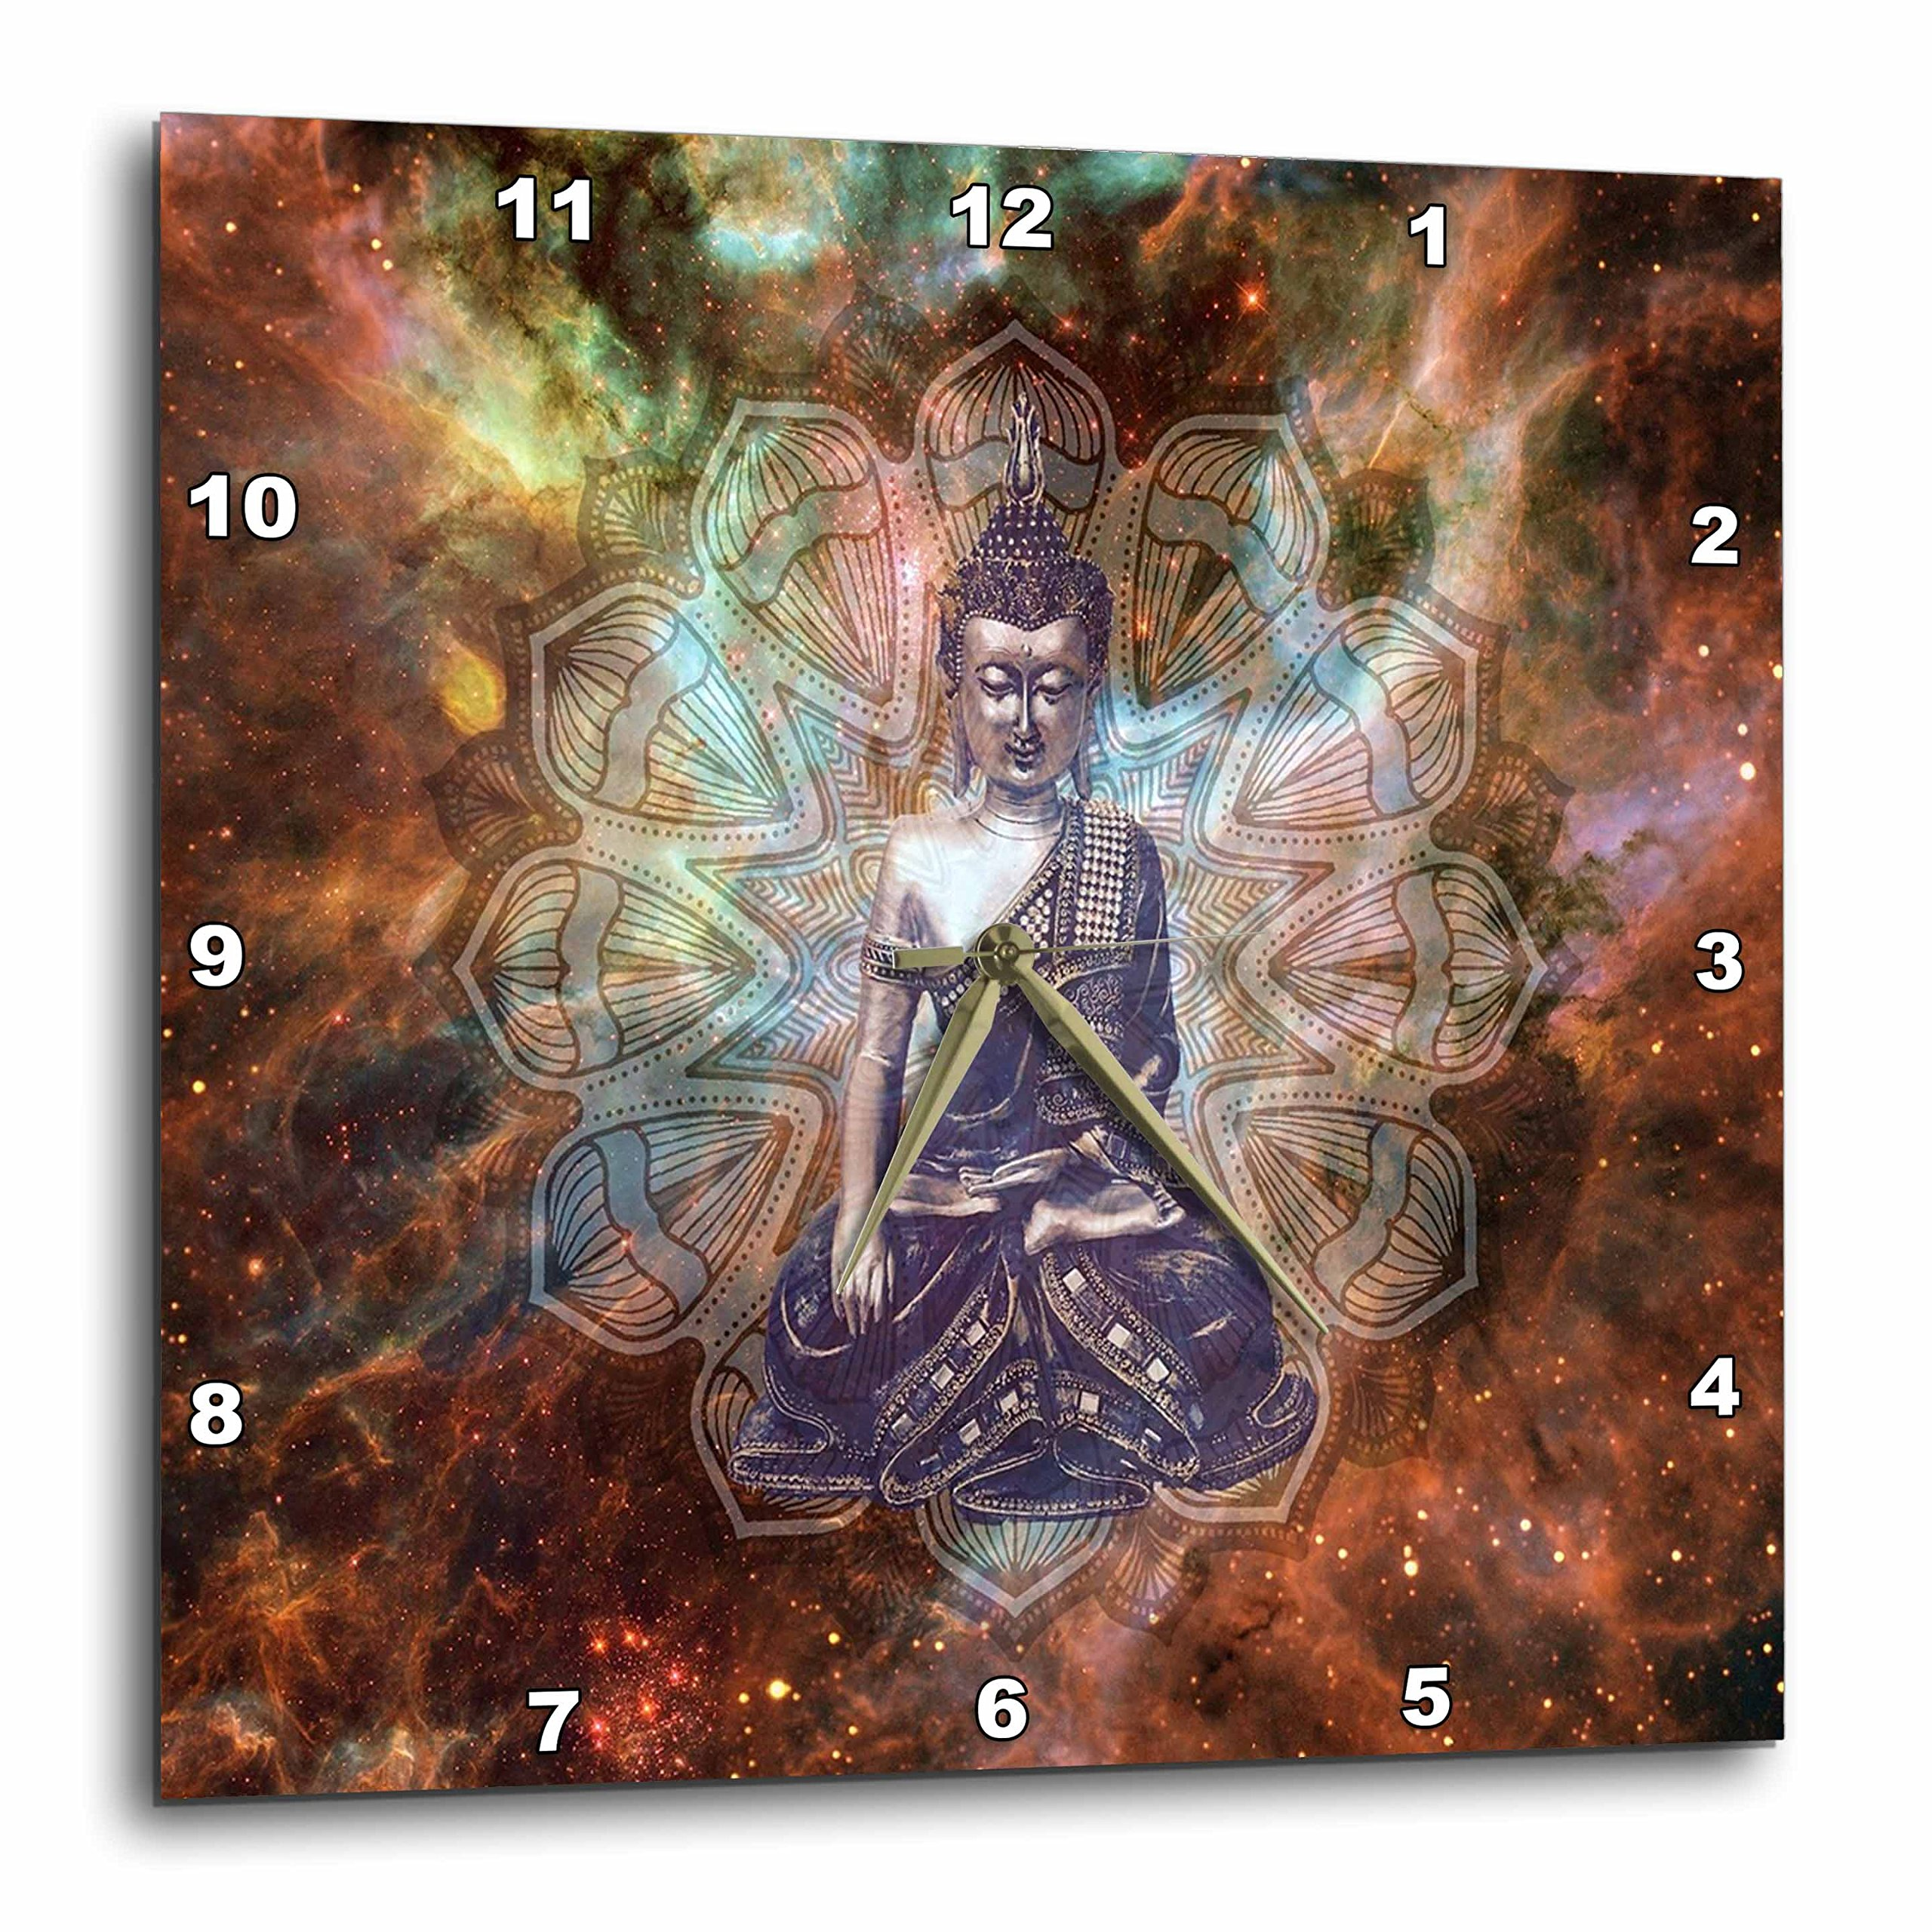 3dRose Religion - Image of Buddha From India Against Colorful Galaxy - 13x13 Wall Clock (dpp_279886_2)